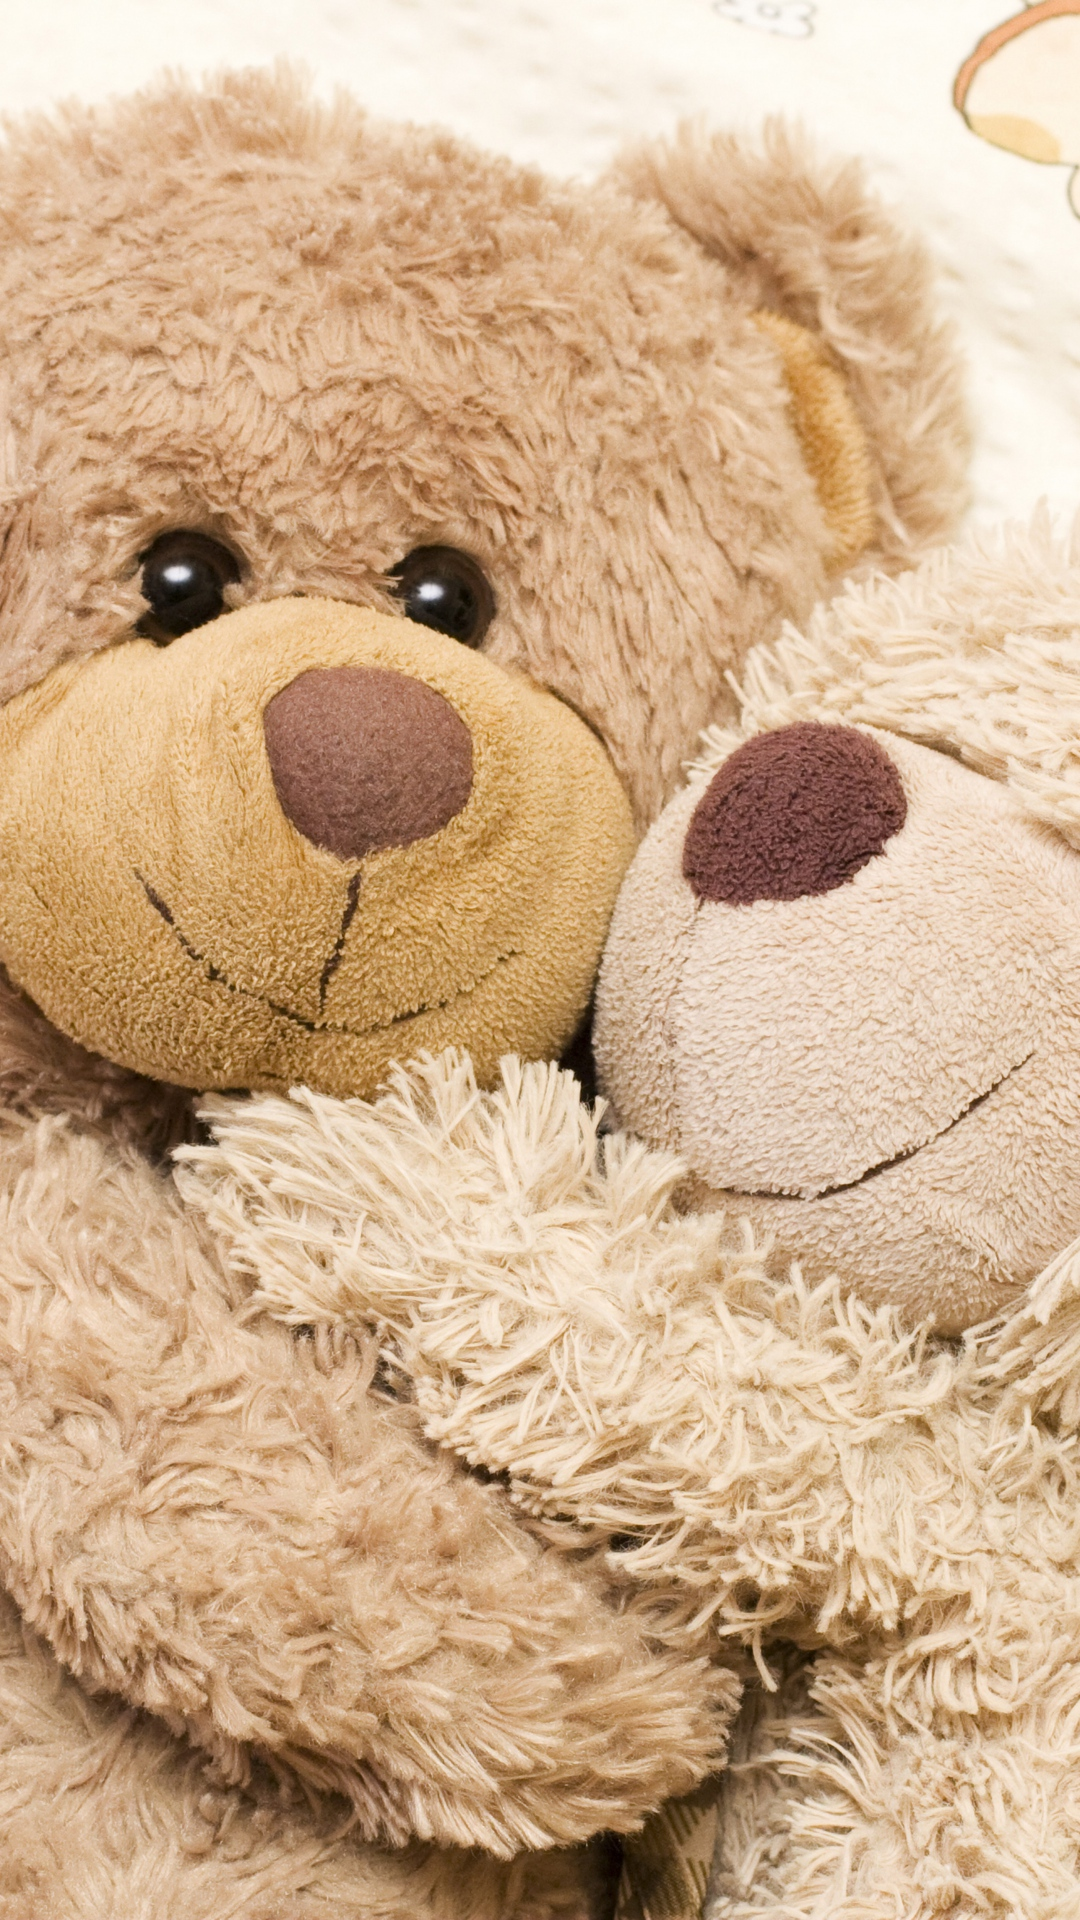 Teddy Bear Hug Day Wallpaper